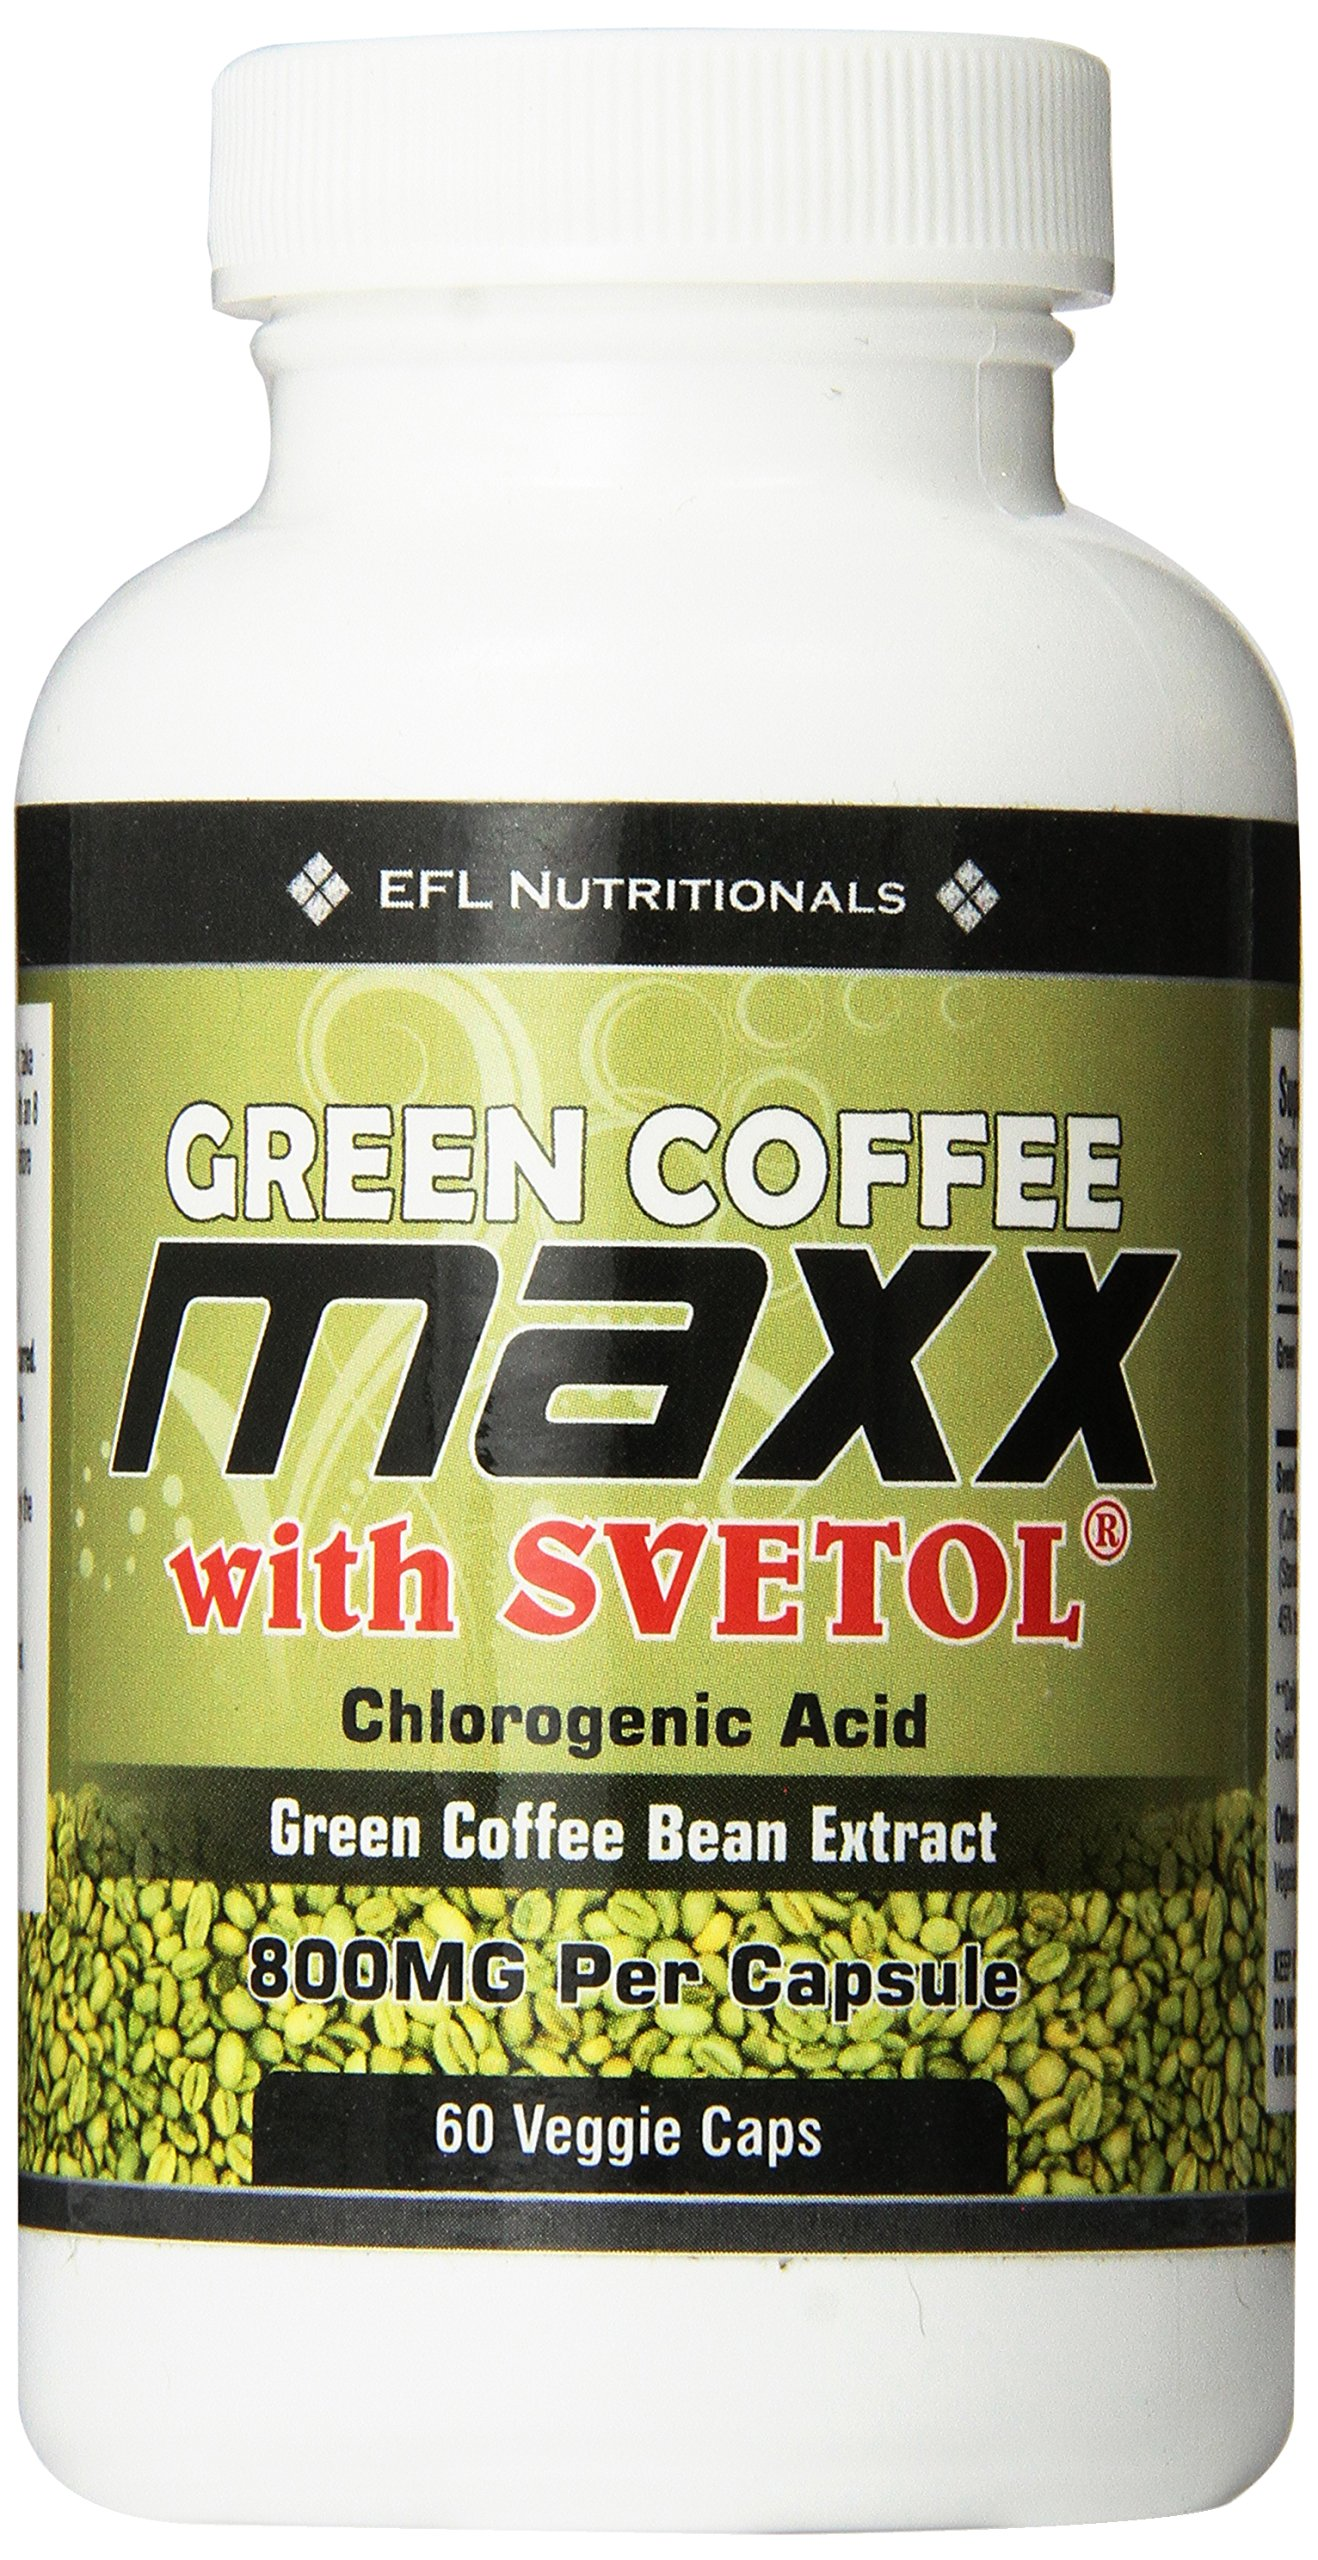 Green Coffee Maxx with Svetol® 800mg Per Capsule 30 Day Supply 60 Count Vegicaps No Fillers by EFL Nutritionals